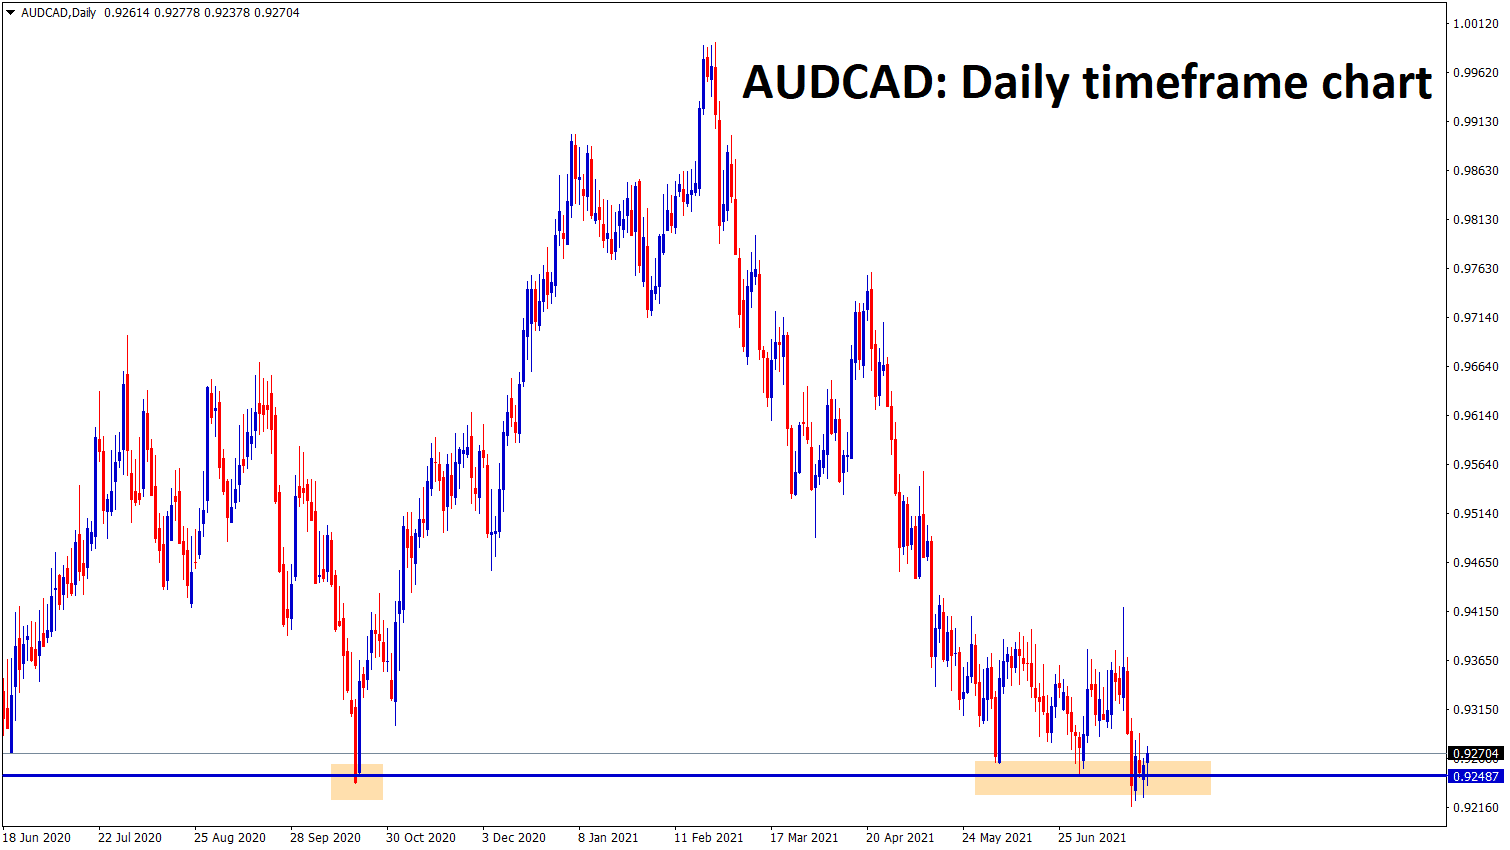 AUDCAD is consolidating at the strong support zone wait for the breakout from this small consolidation zone